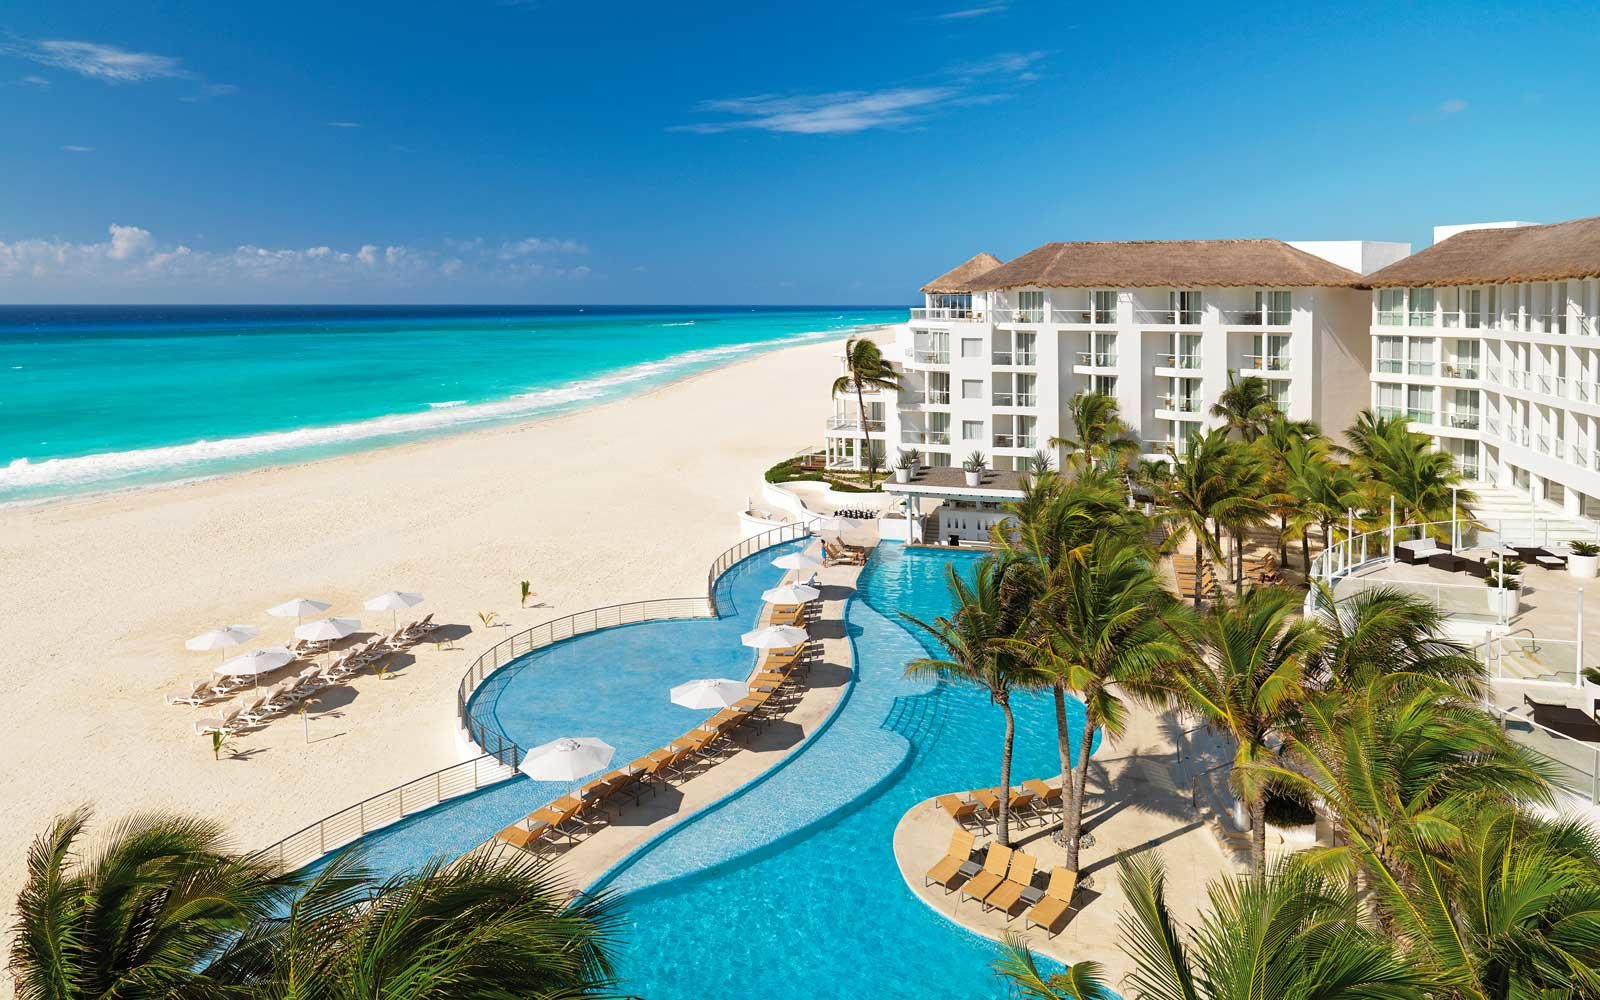 The Best All-Inclusive Resorts in Playa del Carmen ...